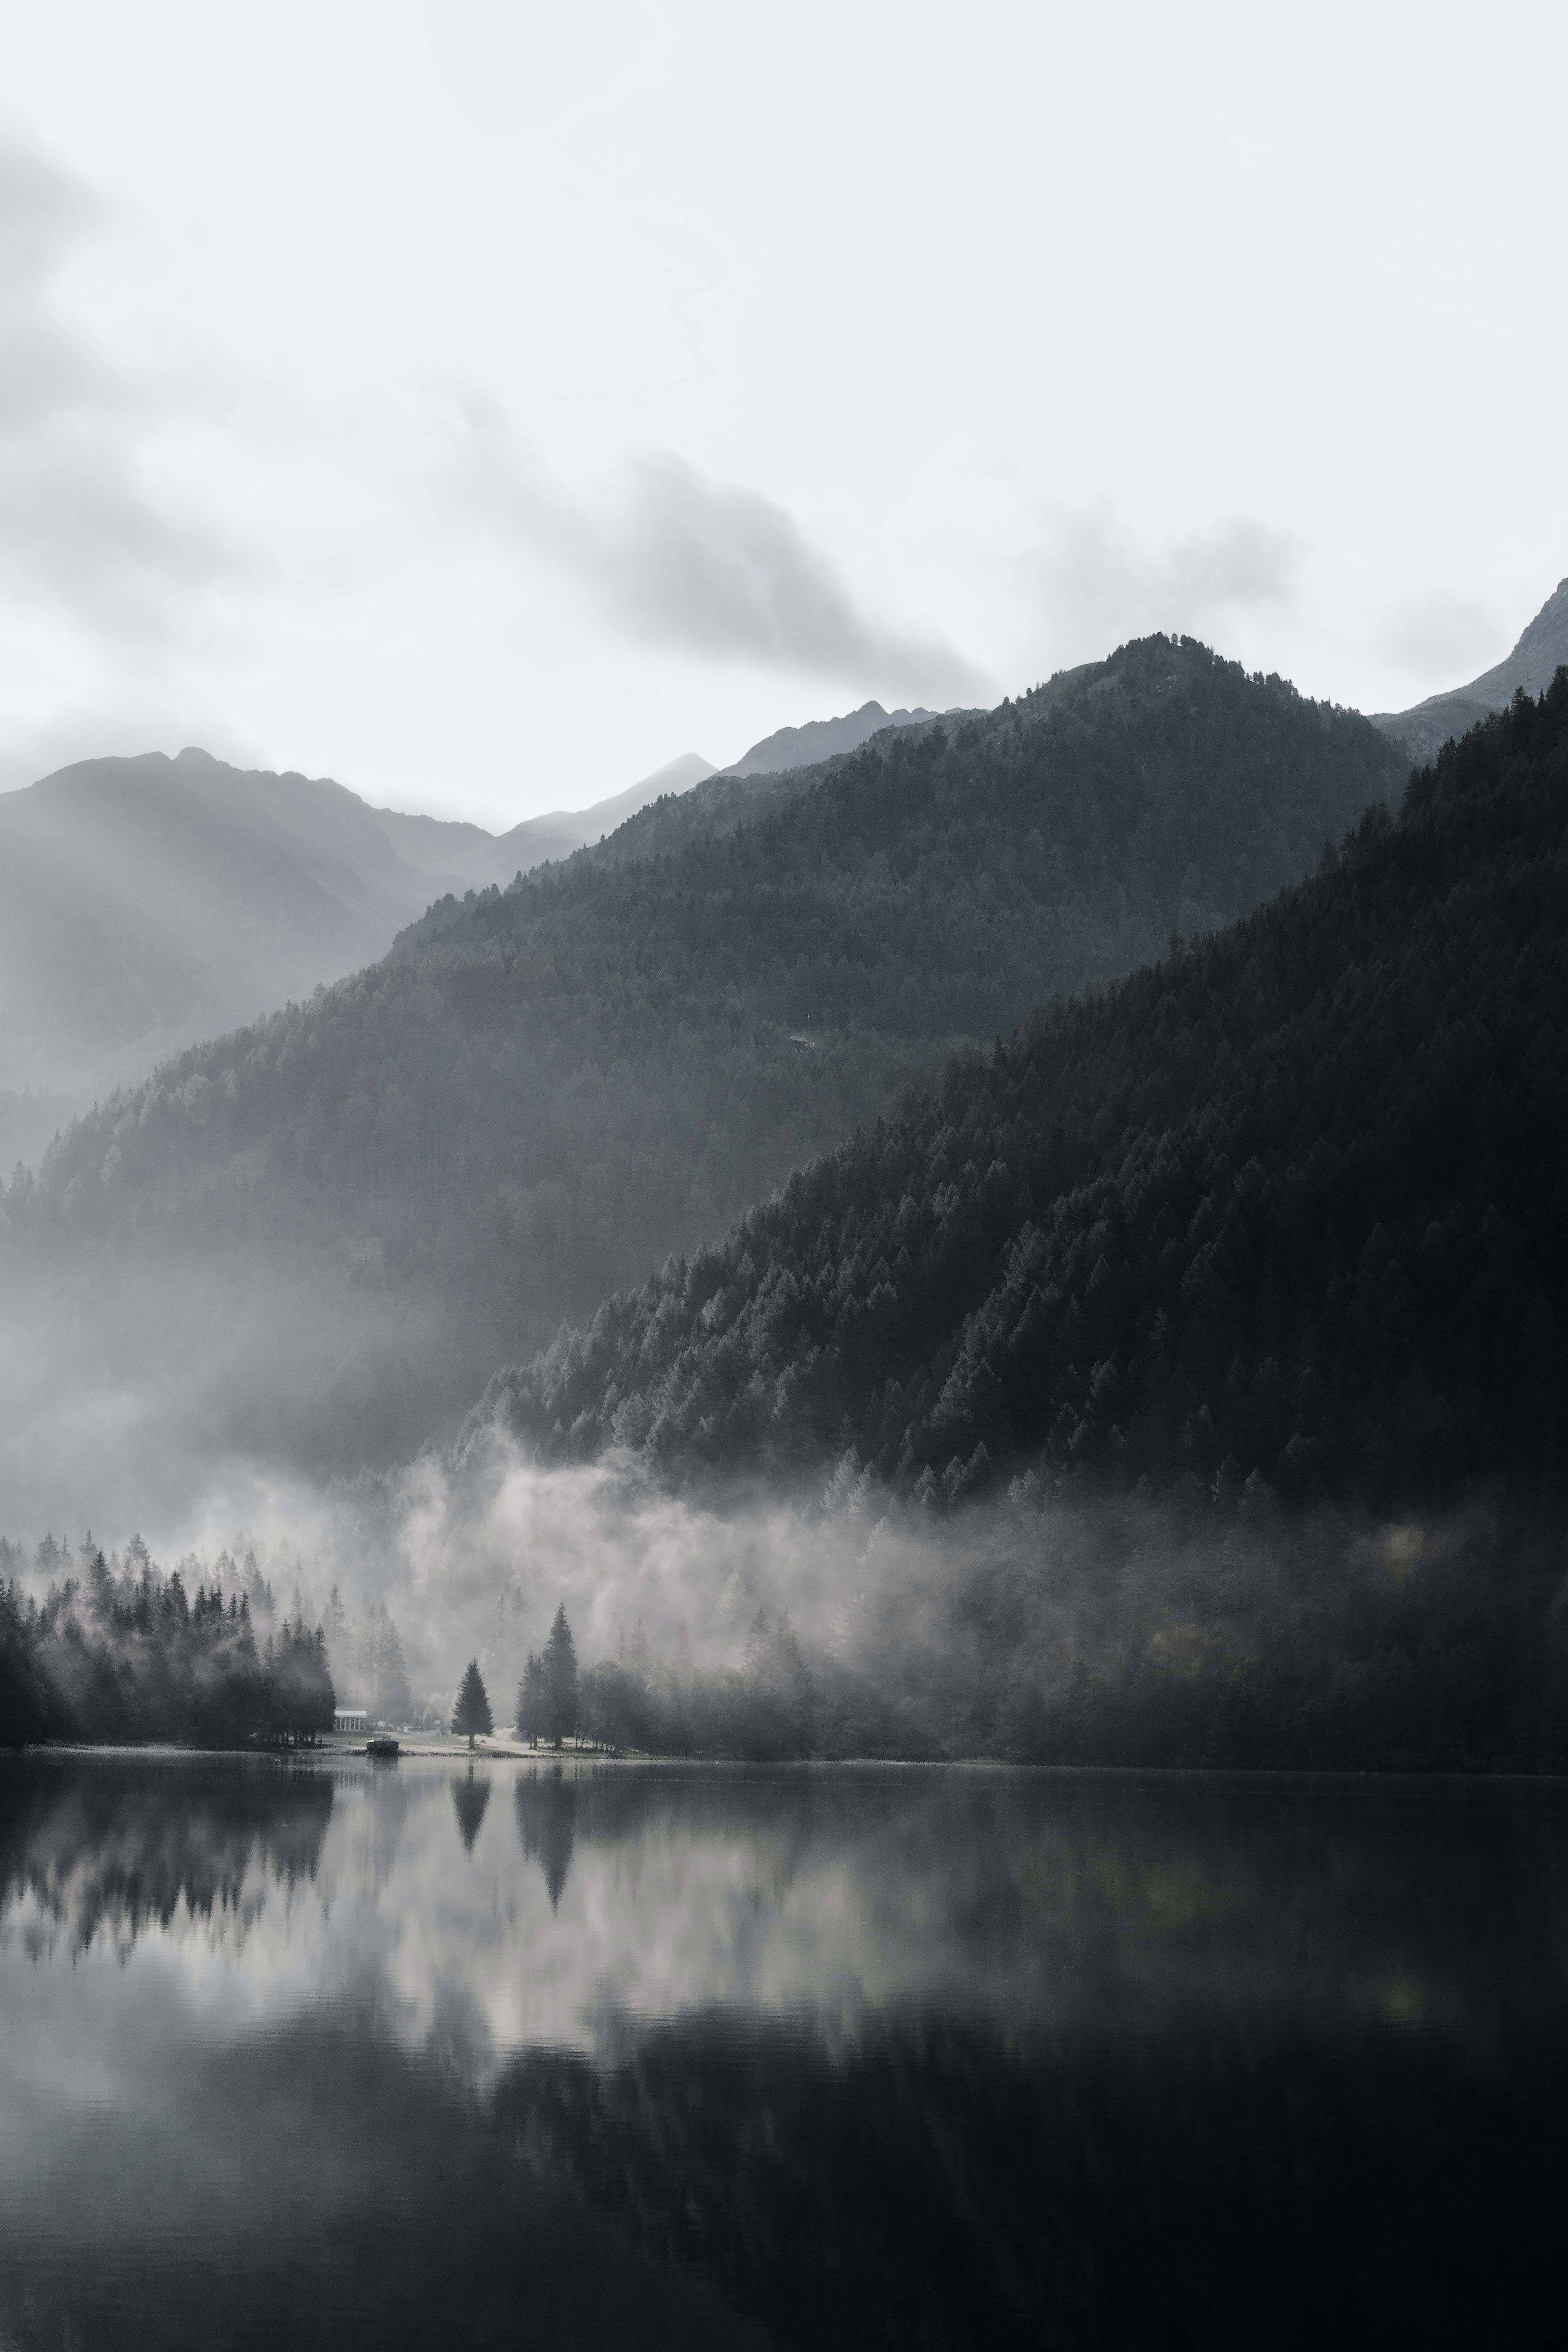 grayscale photography of mountain range with body of water